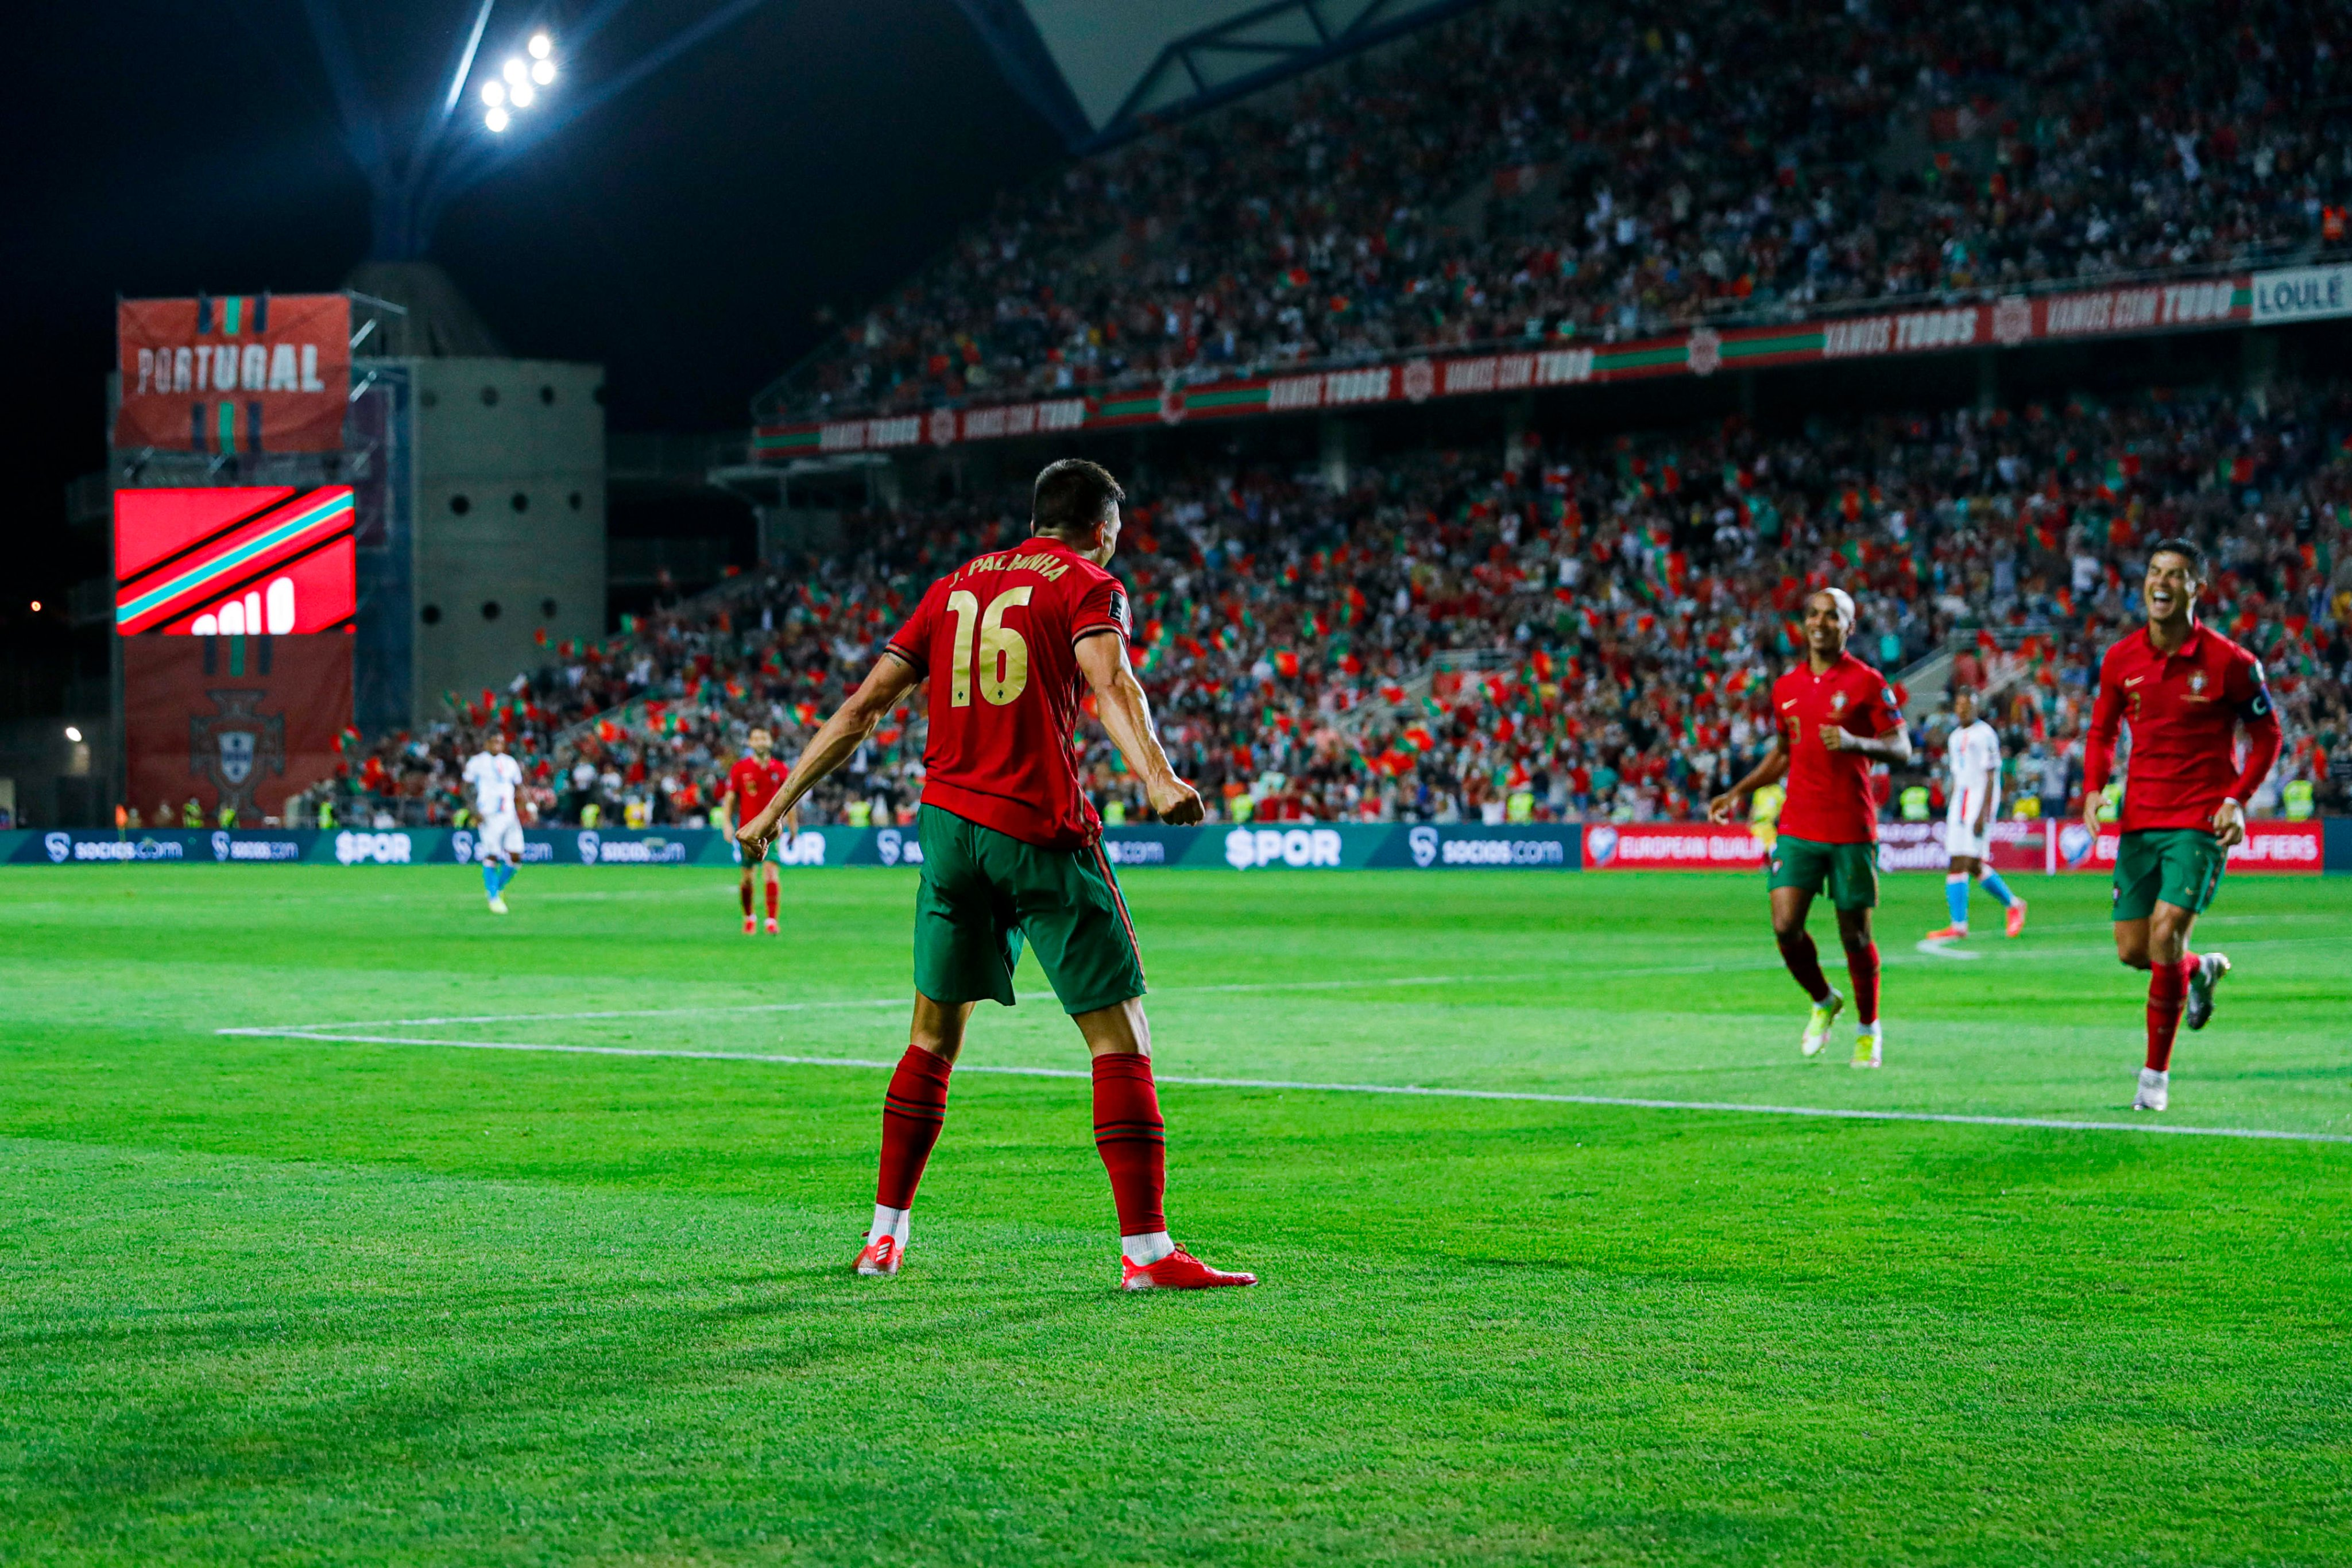 FIFA World Cup Qualifiers: Cristiano Ronaldo scores a hattrick as Portugal thrash Luxembourg 5-0, climb to 2nd in Group A